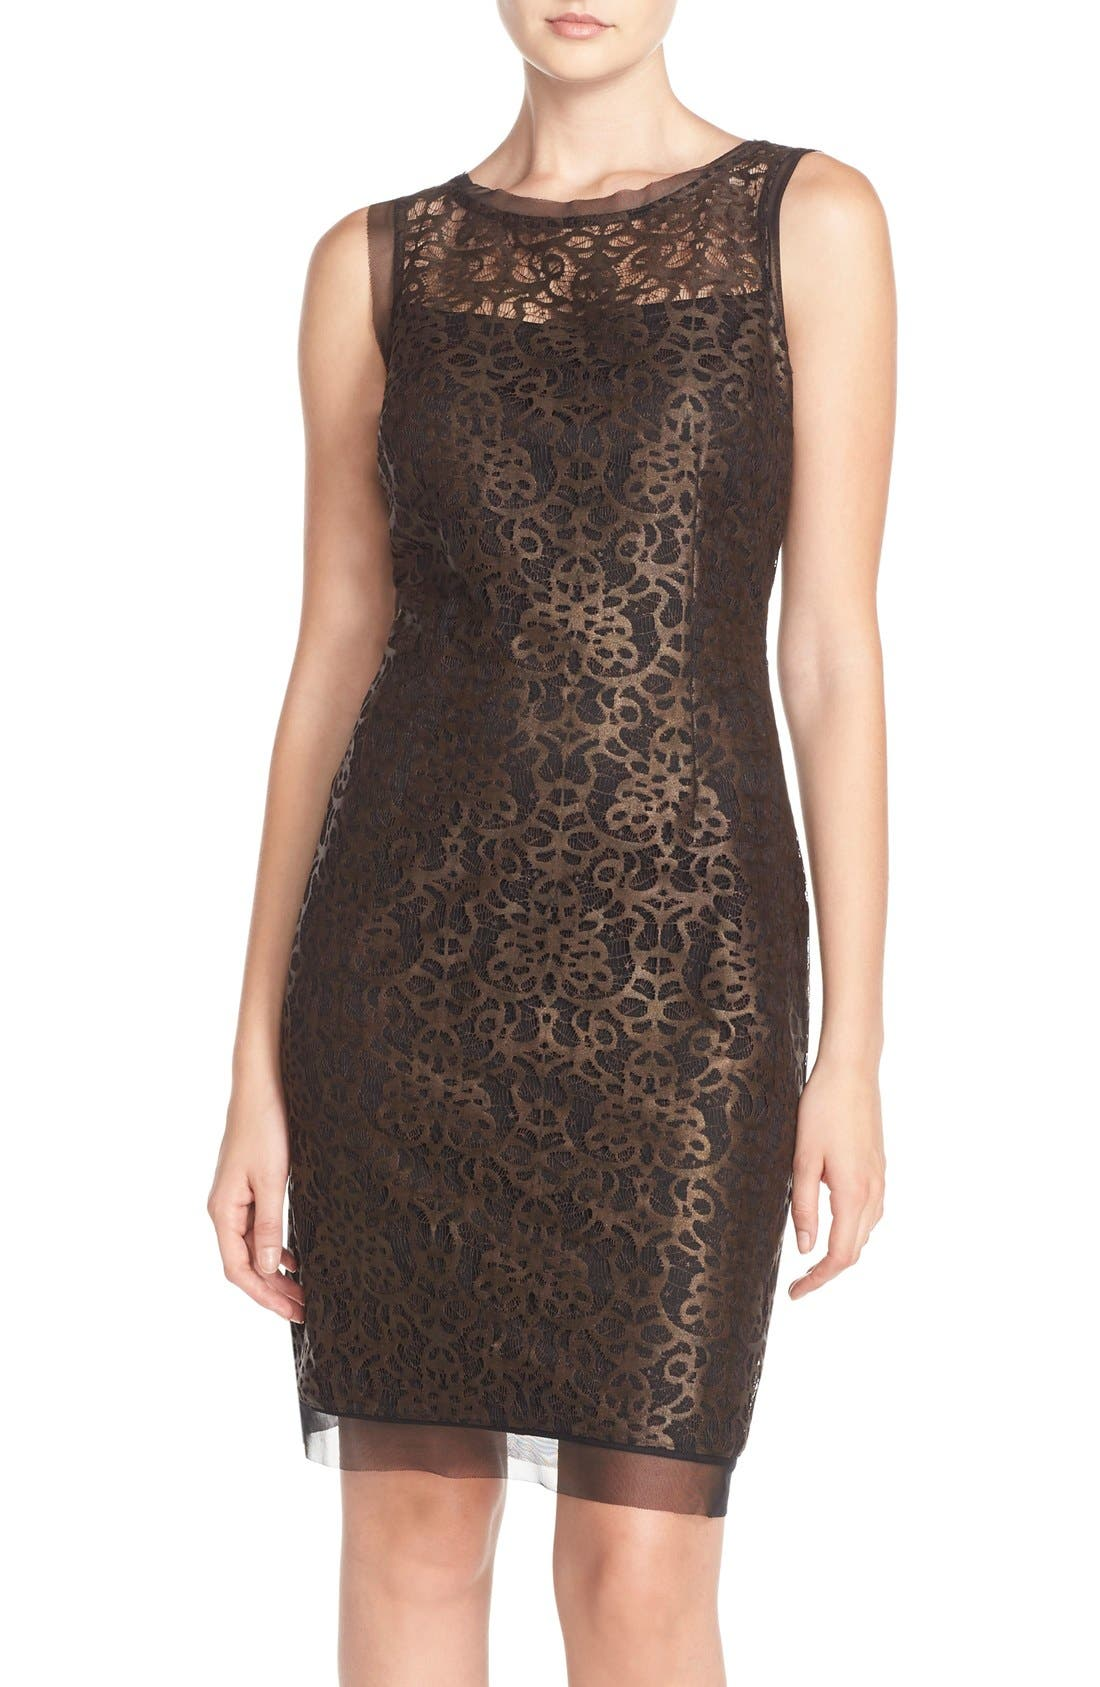 Alternate Image 1 Selected - Julia Jordan Metallic Lace Sheath Dress